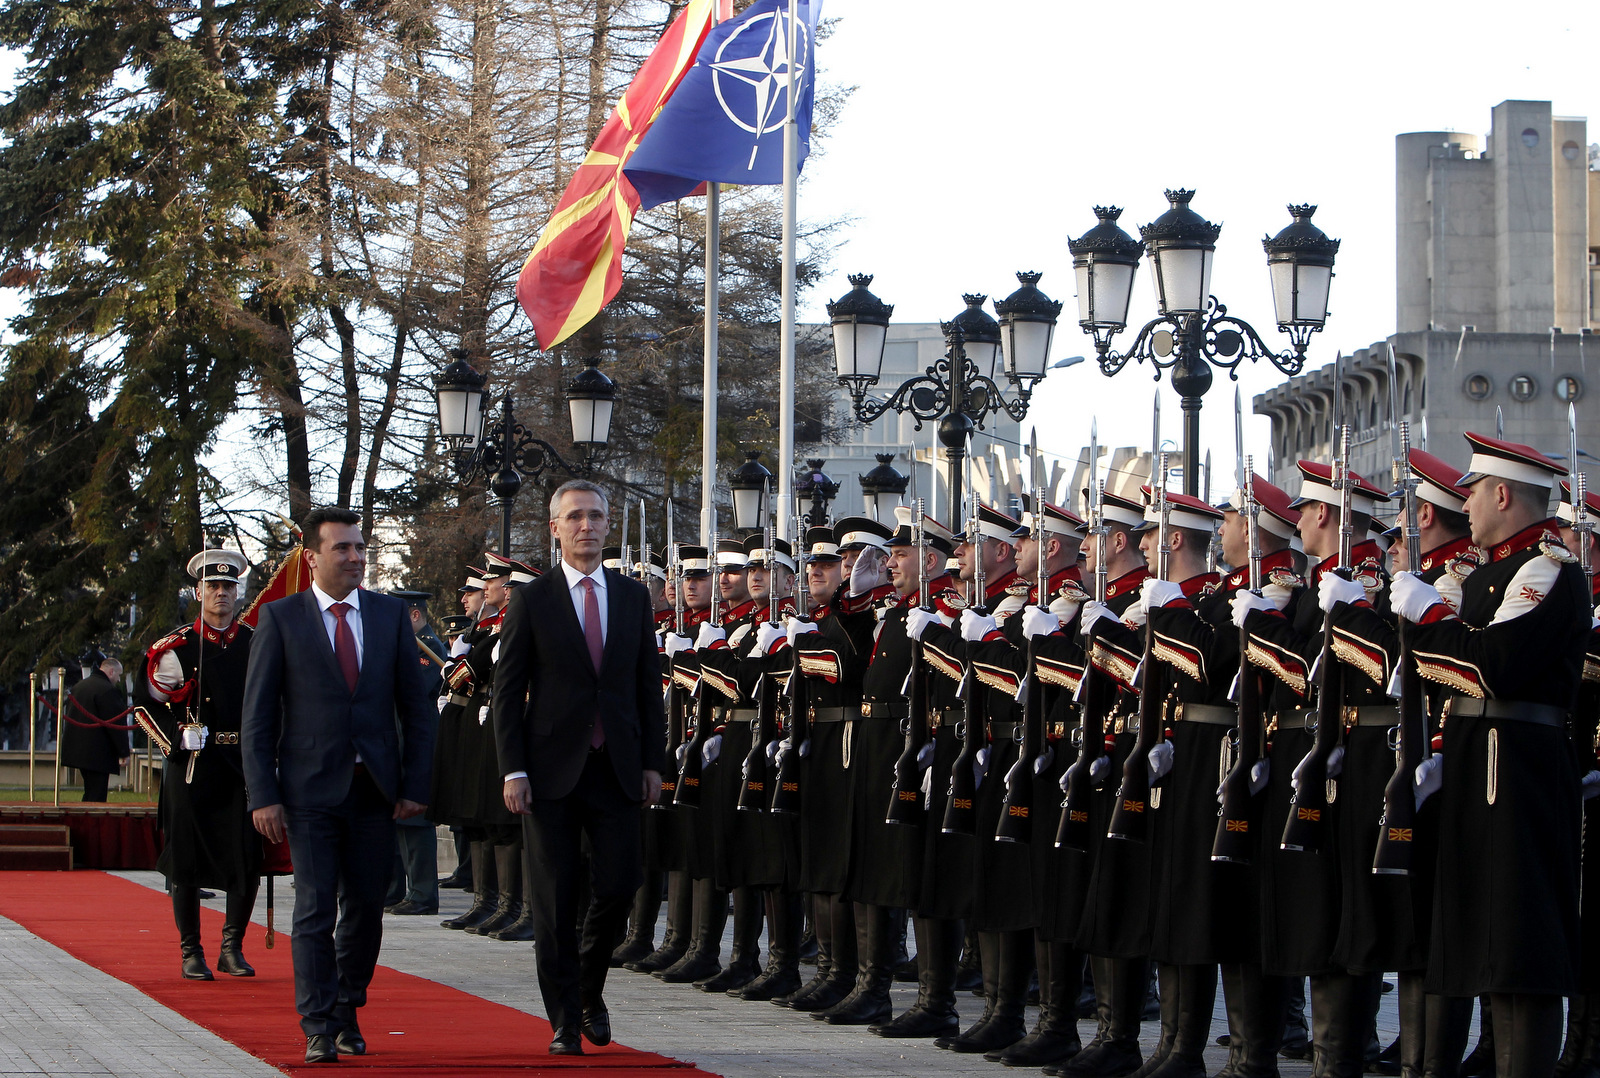 NATO Secretary General Jens Stoltenberg, second from left, accompanied by Macedonian Prime Minister Zoran Zaev, left, inspects an honor guard squad upon his arrival at the Government building in Skopje, Macedonia, Jan. 18, 2018. NATO's secretary-general urged Macedonia to solve its name dispute with Greece and proceed with wide-ranging reforms if it wants its membership bid to succeed. (AP/Boris Grdanoski)